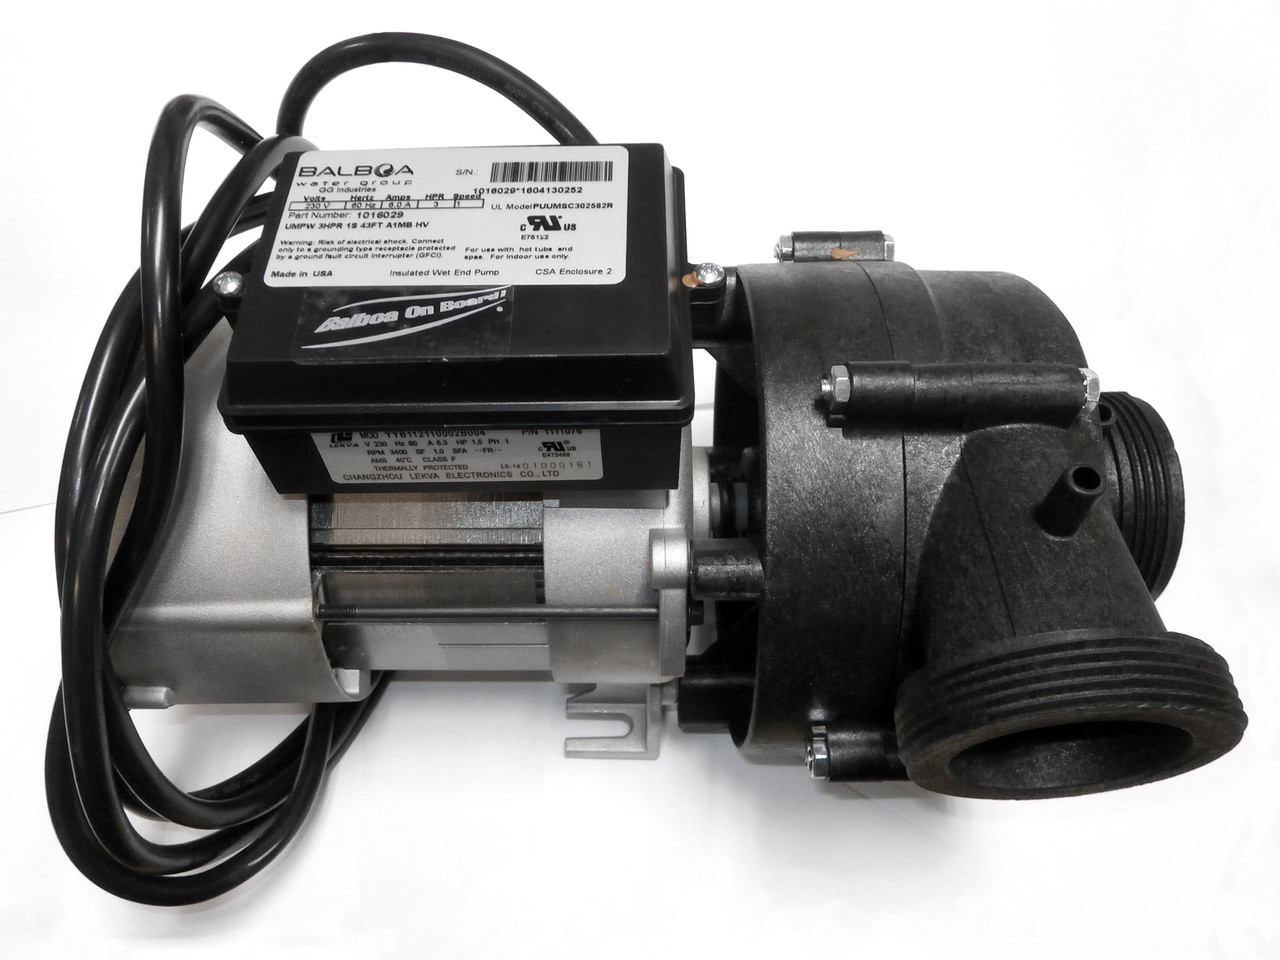 X320400 - Spa Pump - 3hp 1spd Pentair Ultimax 240V Power WOW 9 ... on